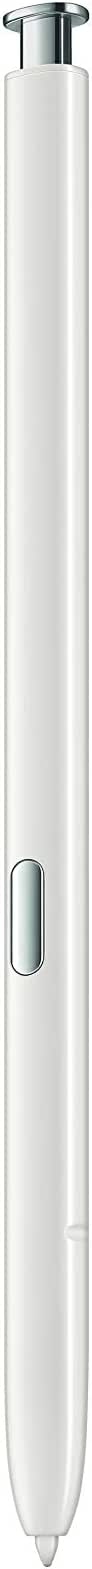 Samsung Official Replacement S-Pen for Galaxy Note10, and Note10+ with Bluetooth (White)